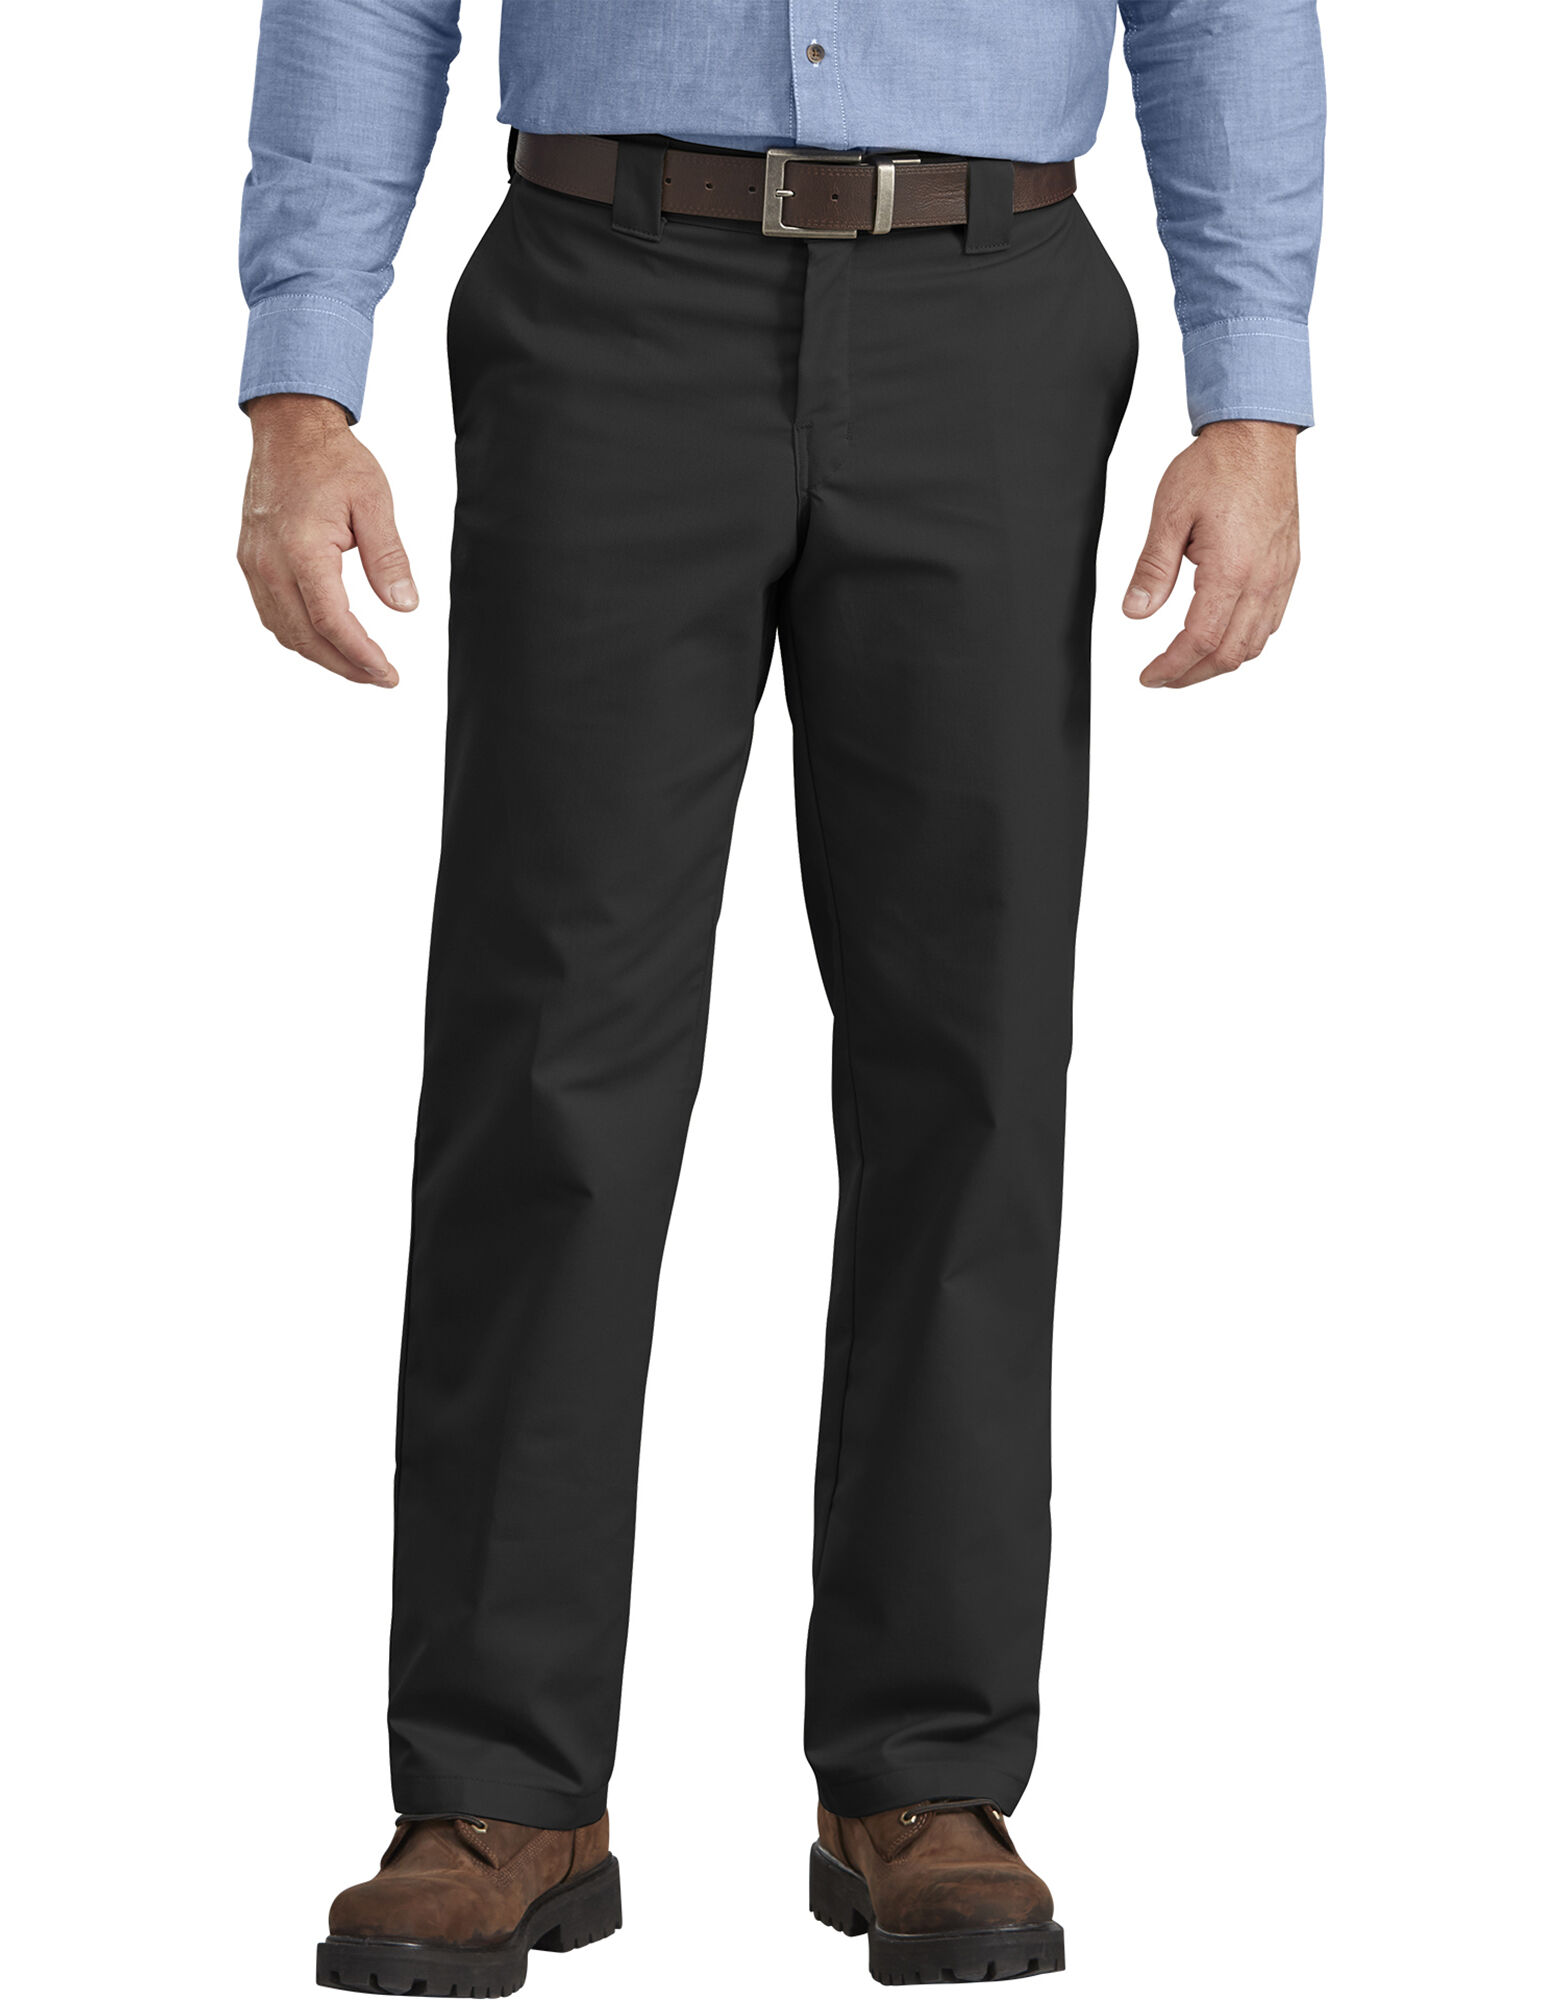 FLEX Regular Fit Straight Leg Twill Multi-Use Pocket Work Pants-Dickies Canada